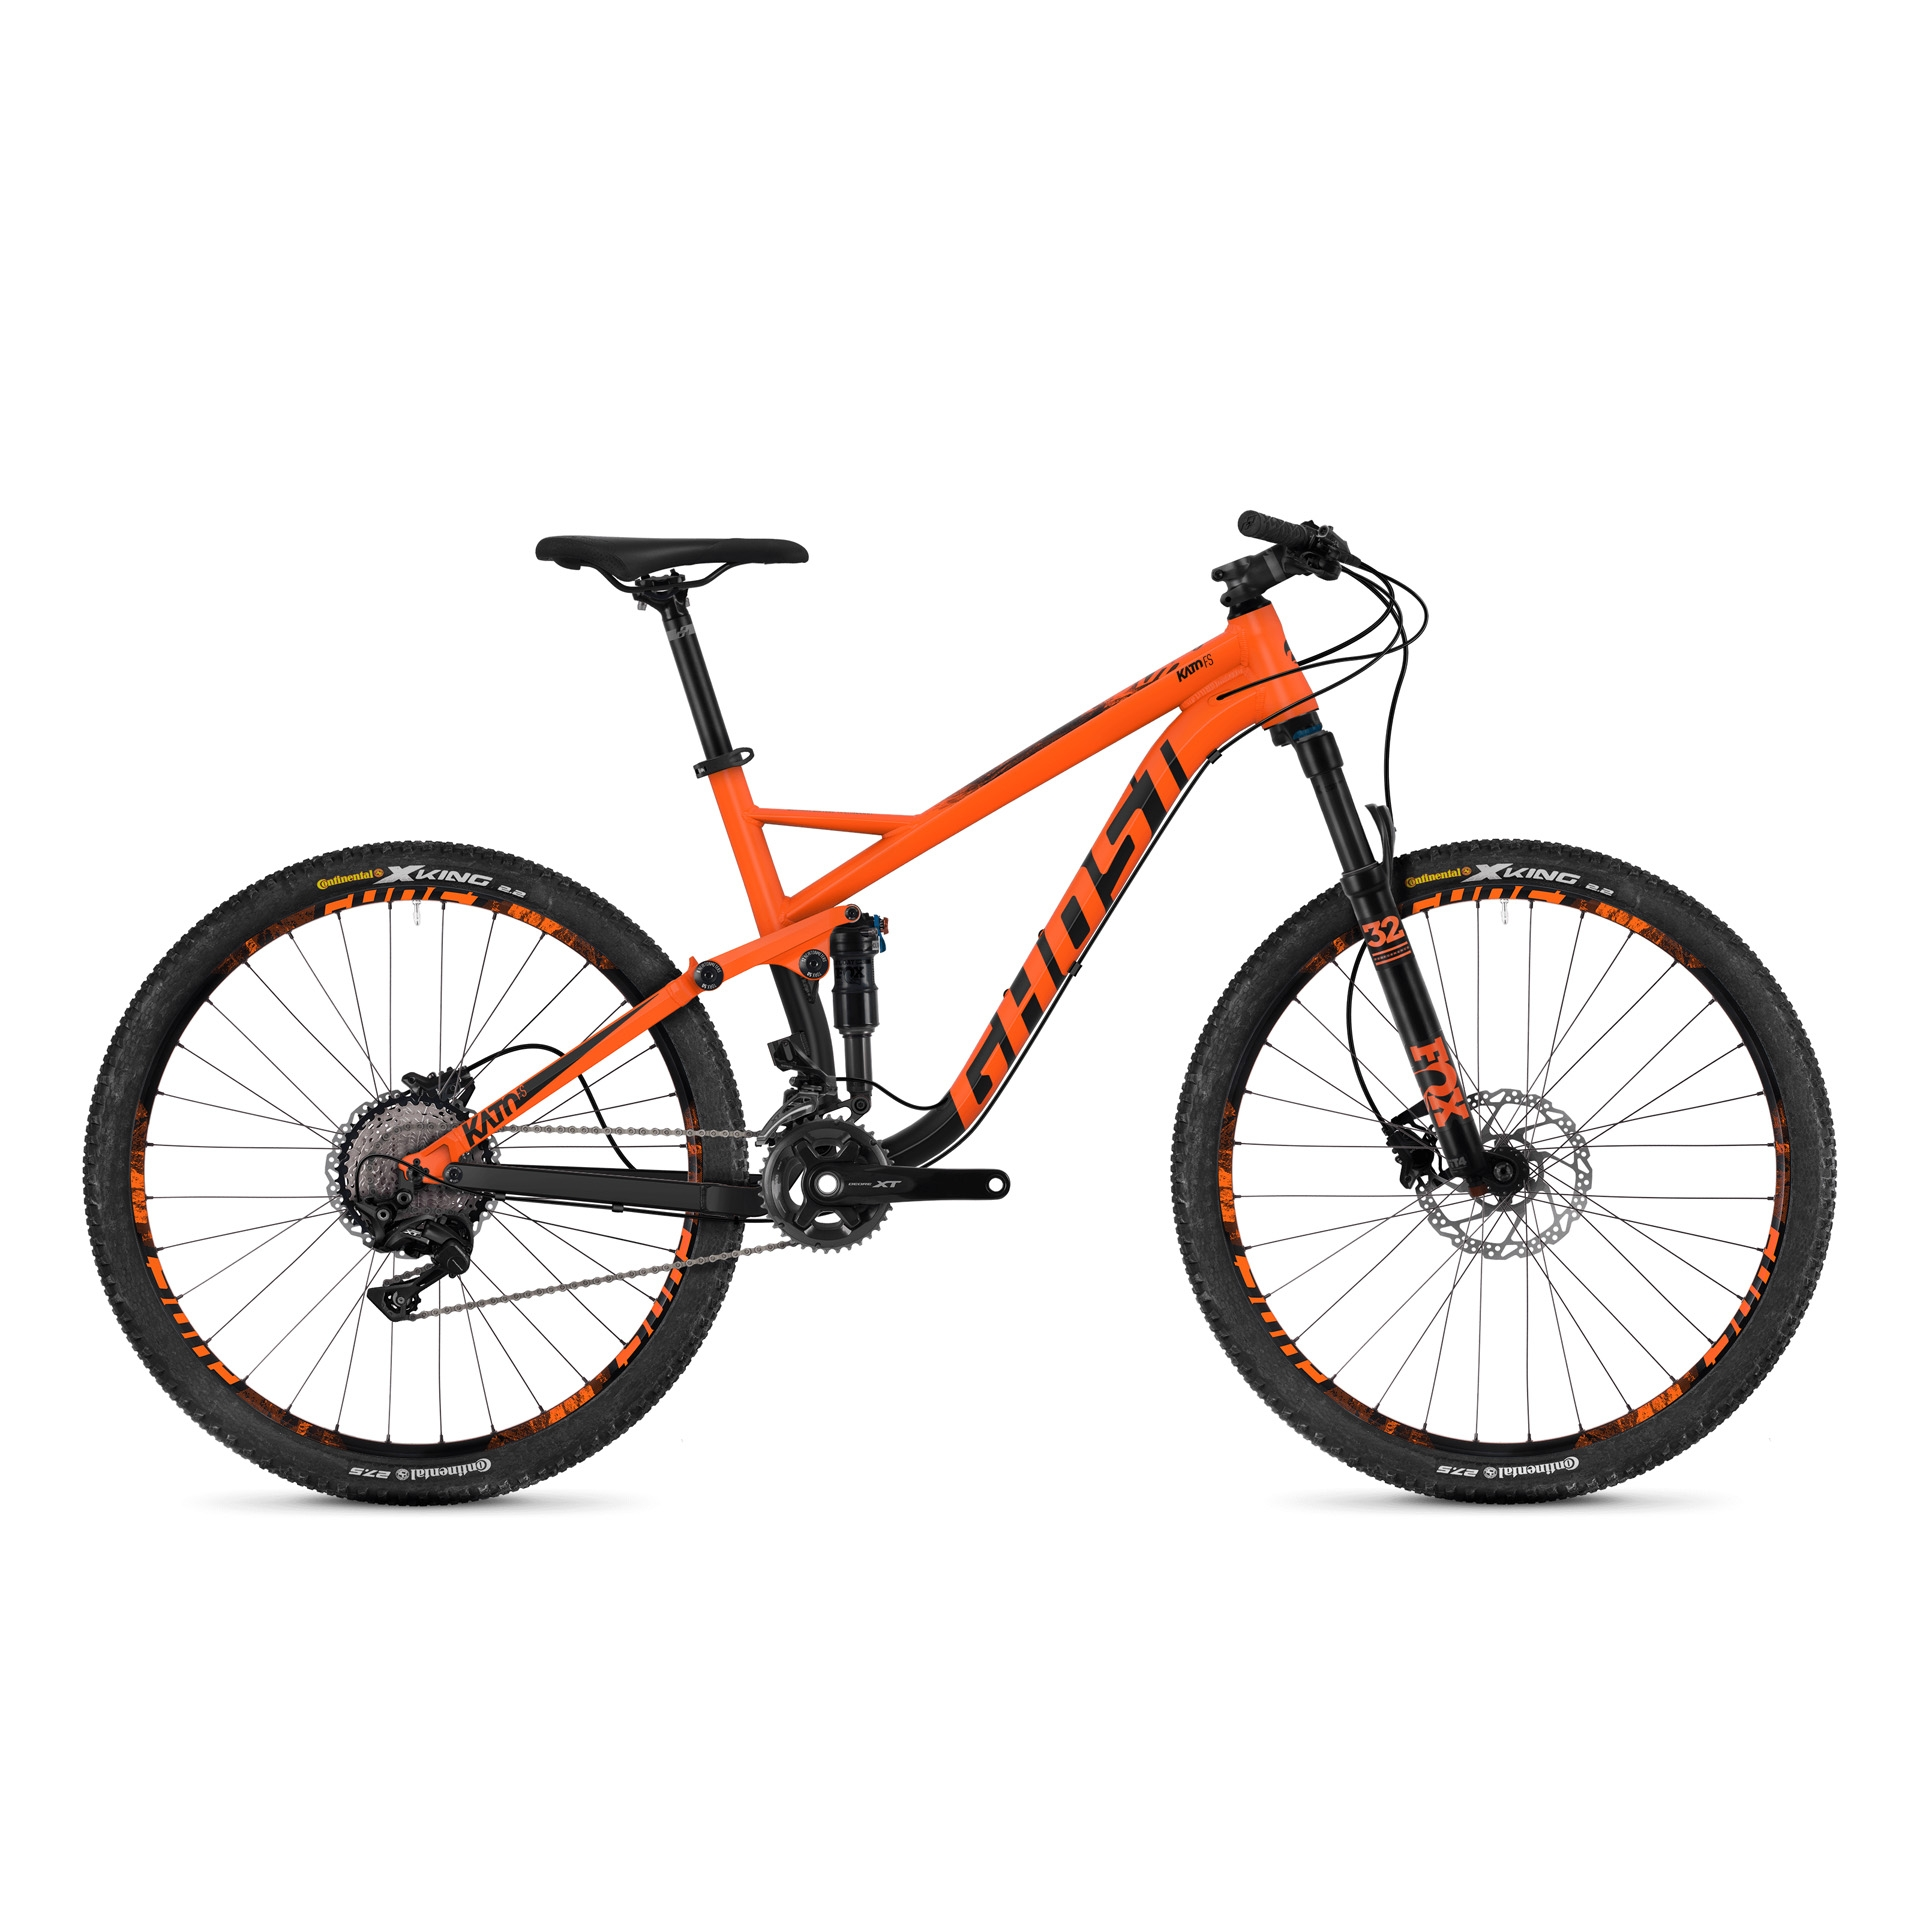 VTT tout suspendu Ghost Kato FS 5.7 27.5 Orange/Noir - L